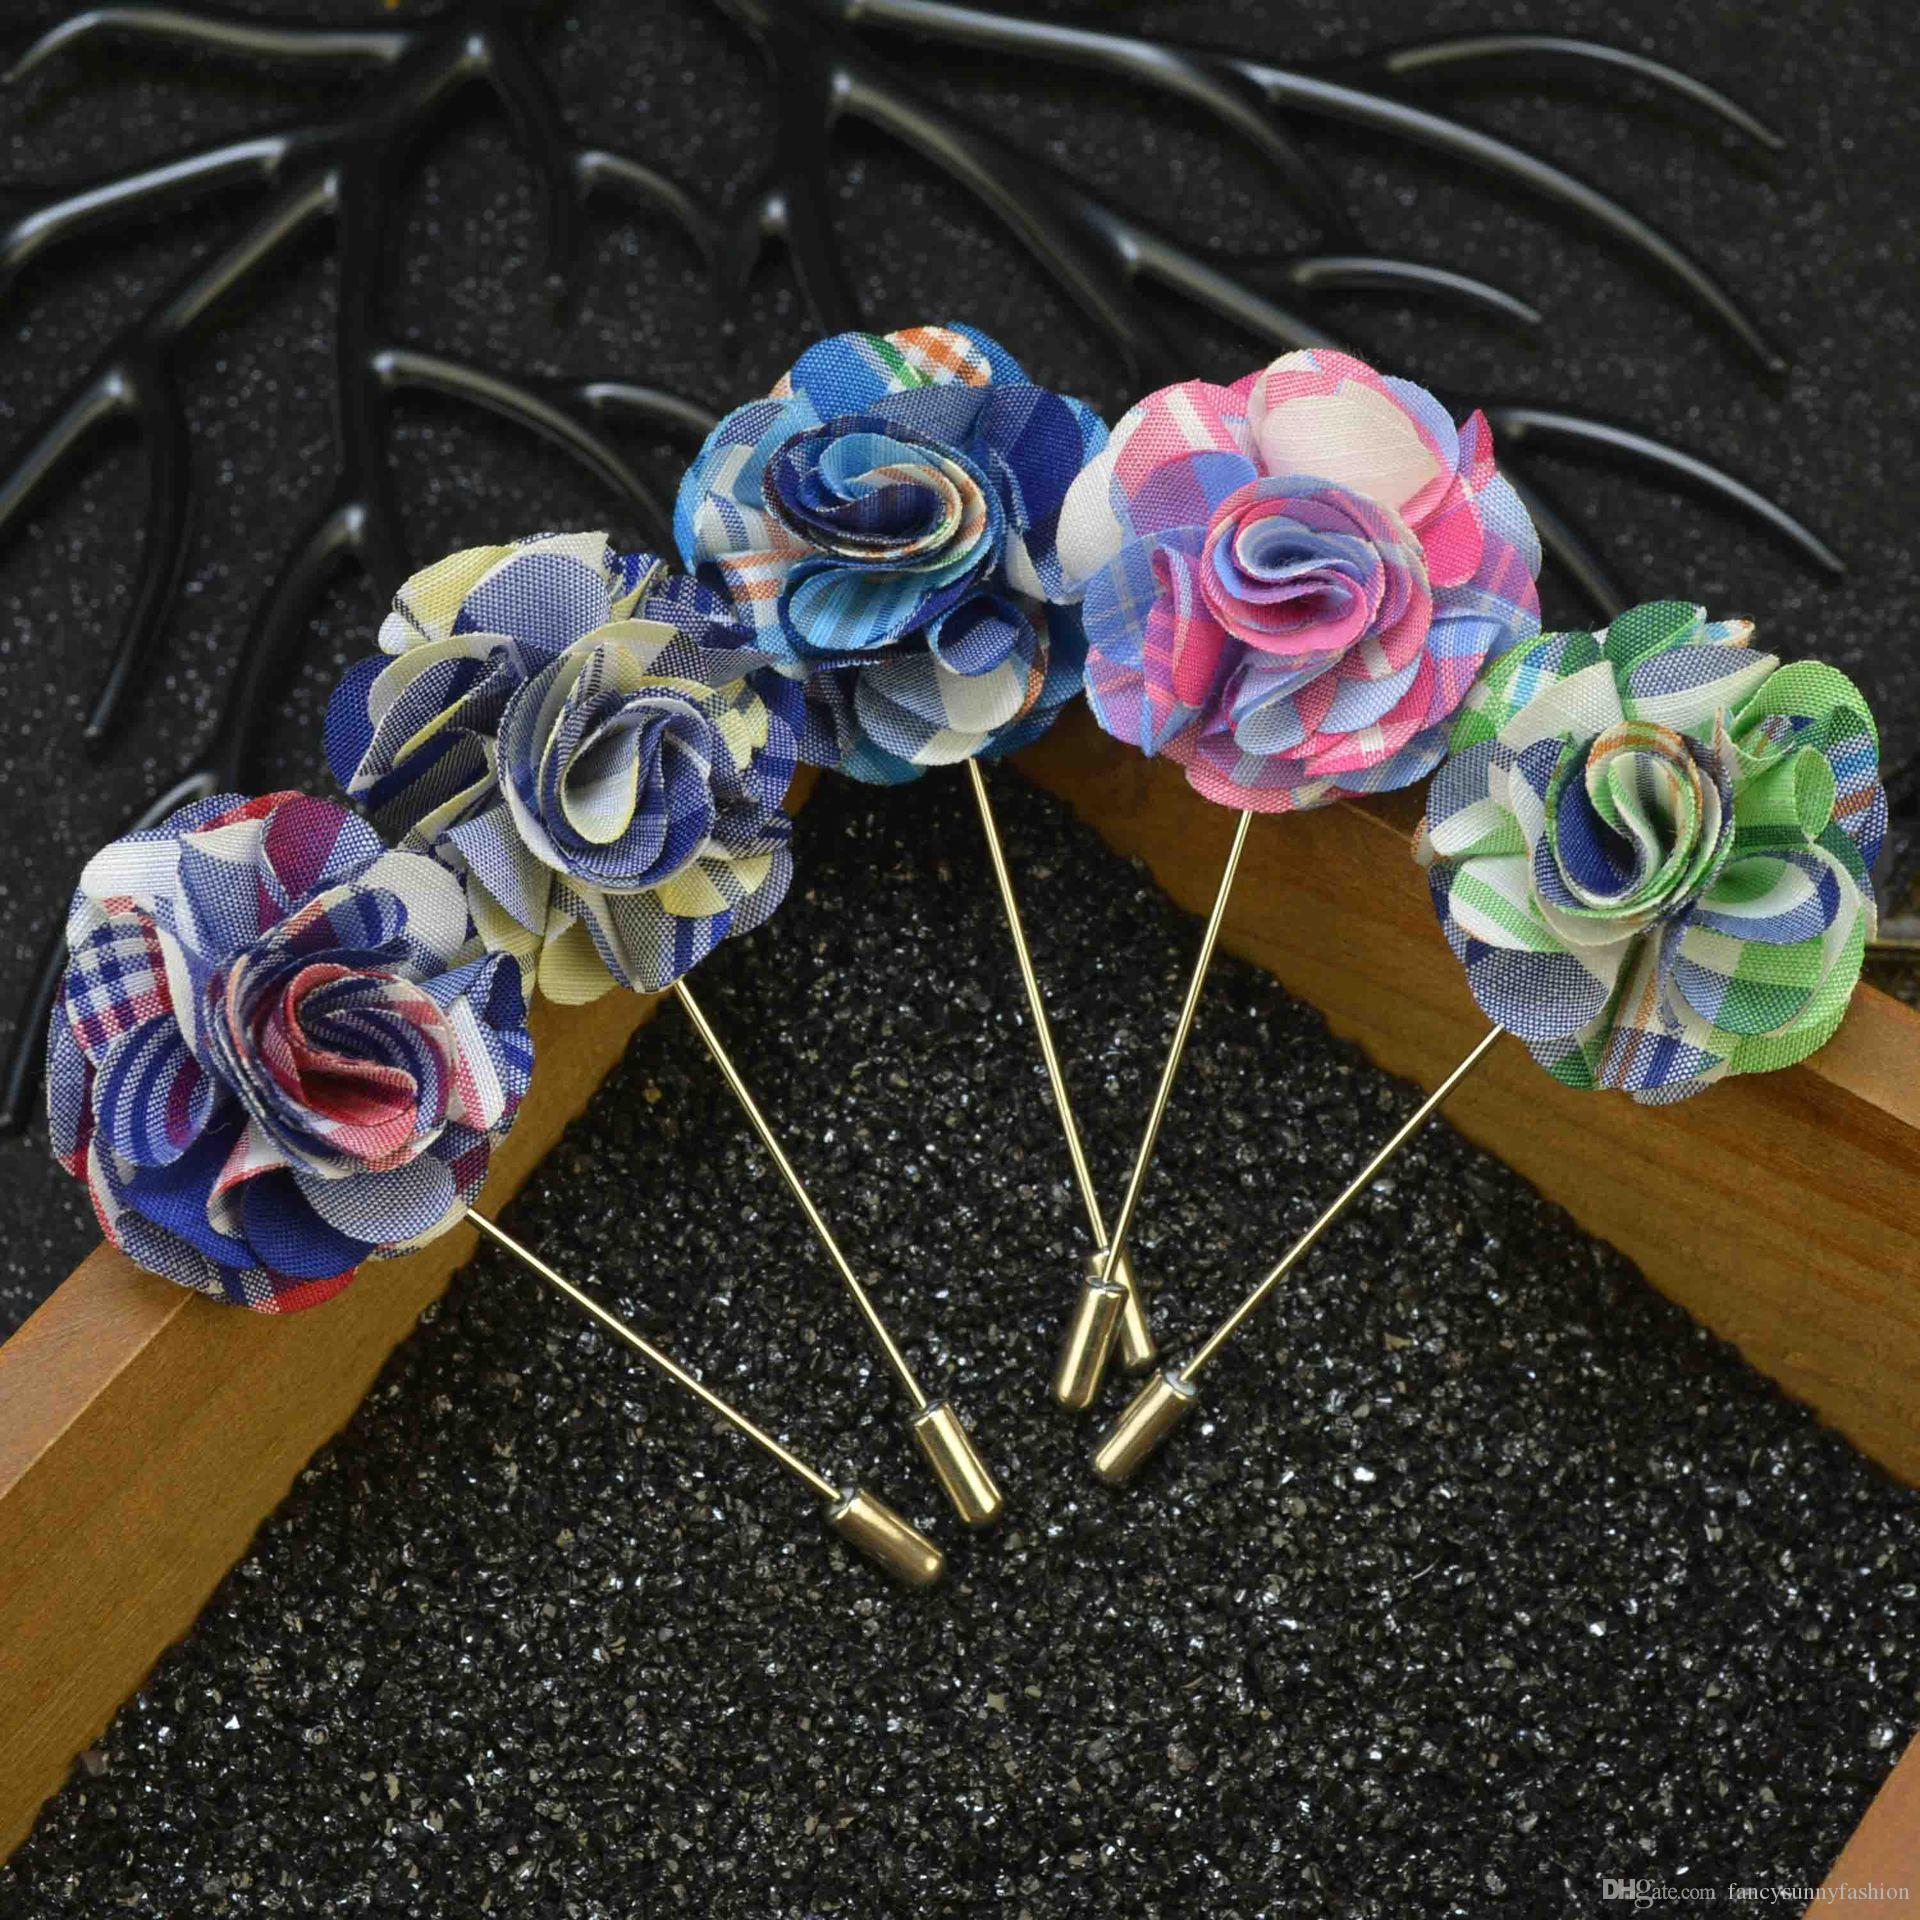 Discount price cheap fabric flower brooch pins handmade boutonniere discount price cheap fabric flower brooch pins handmade boutonniere sick with silk flowers for men suit wear men accessories in luxury plaid from china mightylinksfo